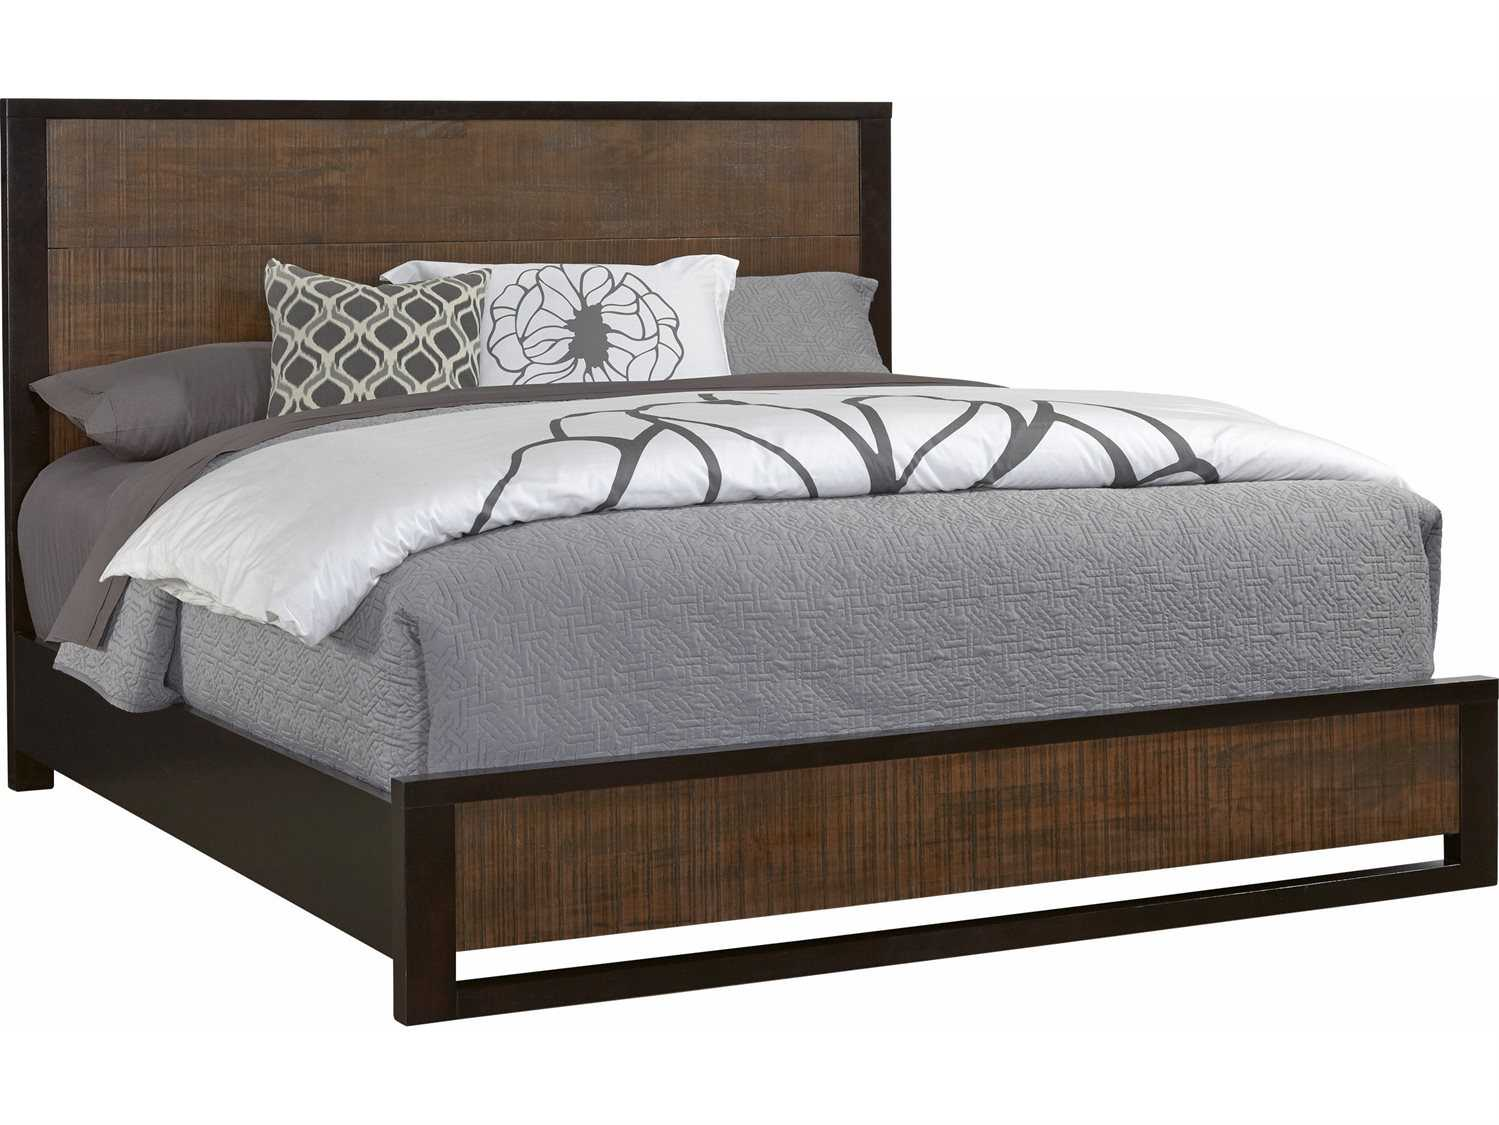 top photo of casana bedroom furniture sharon norwood journal casana axel bedroom set 265 911kkset